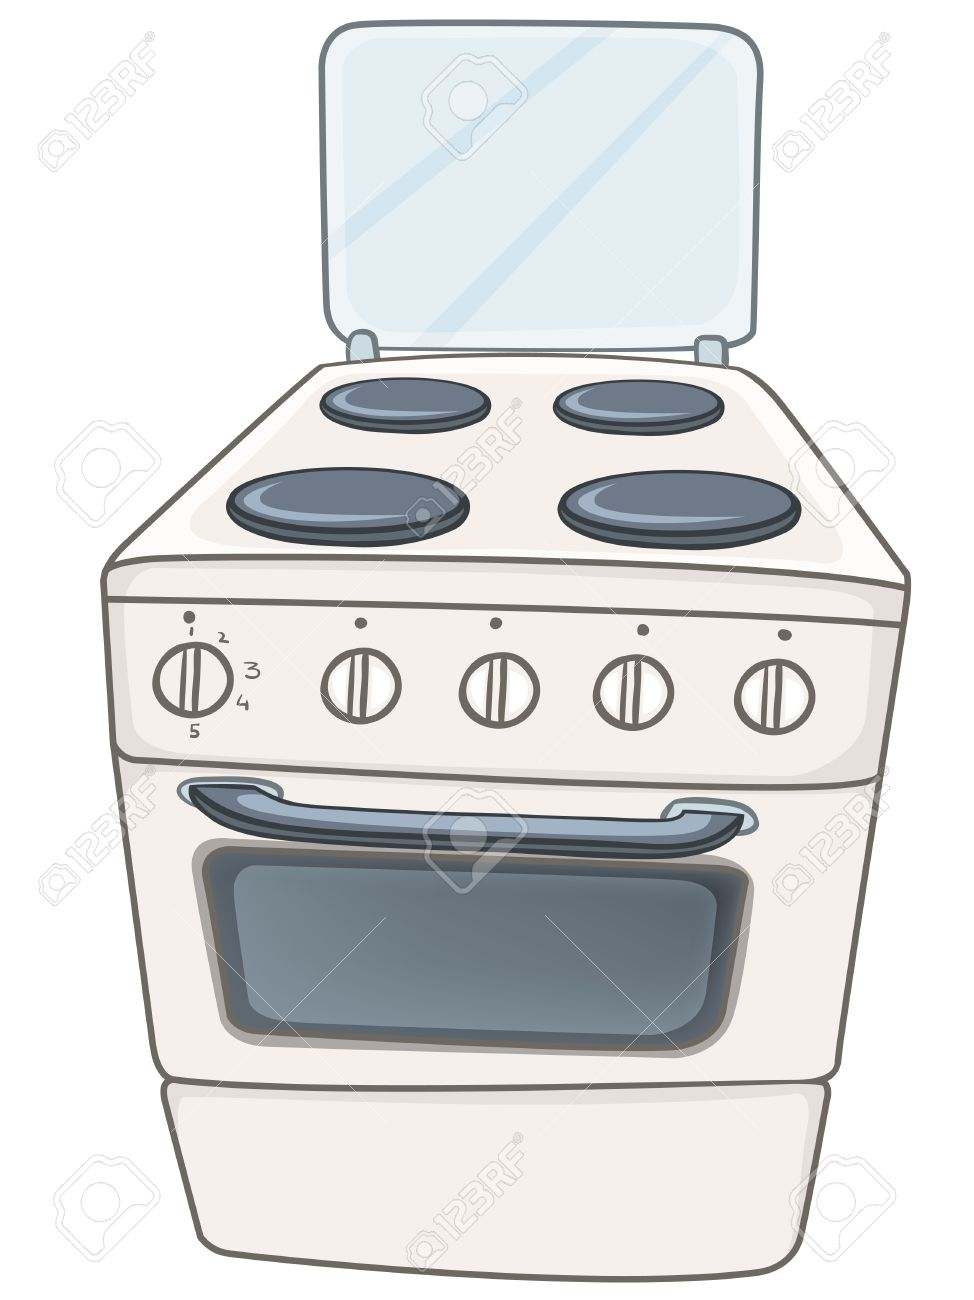 Cartoon Home Kitchen Stove Royalty Free Cliparts, Vectors, And Stock ...